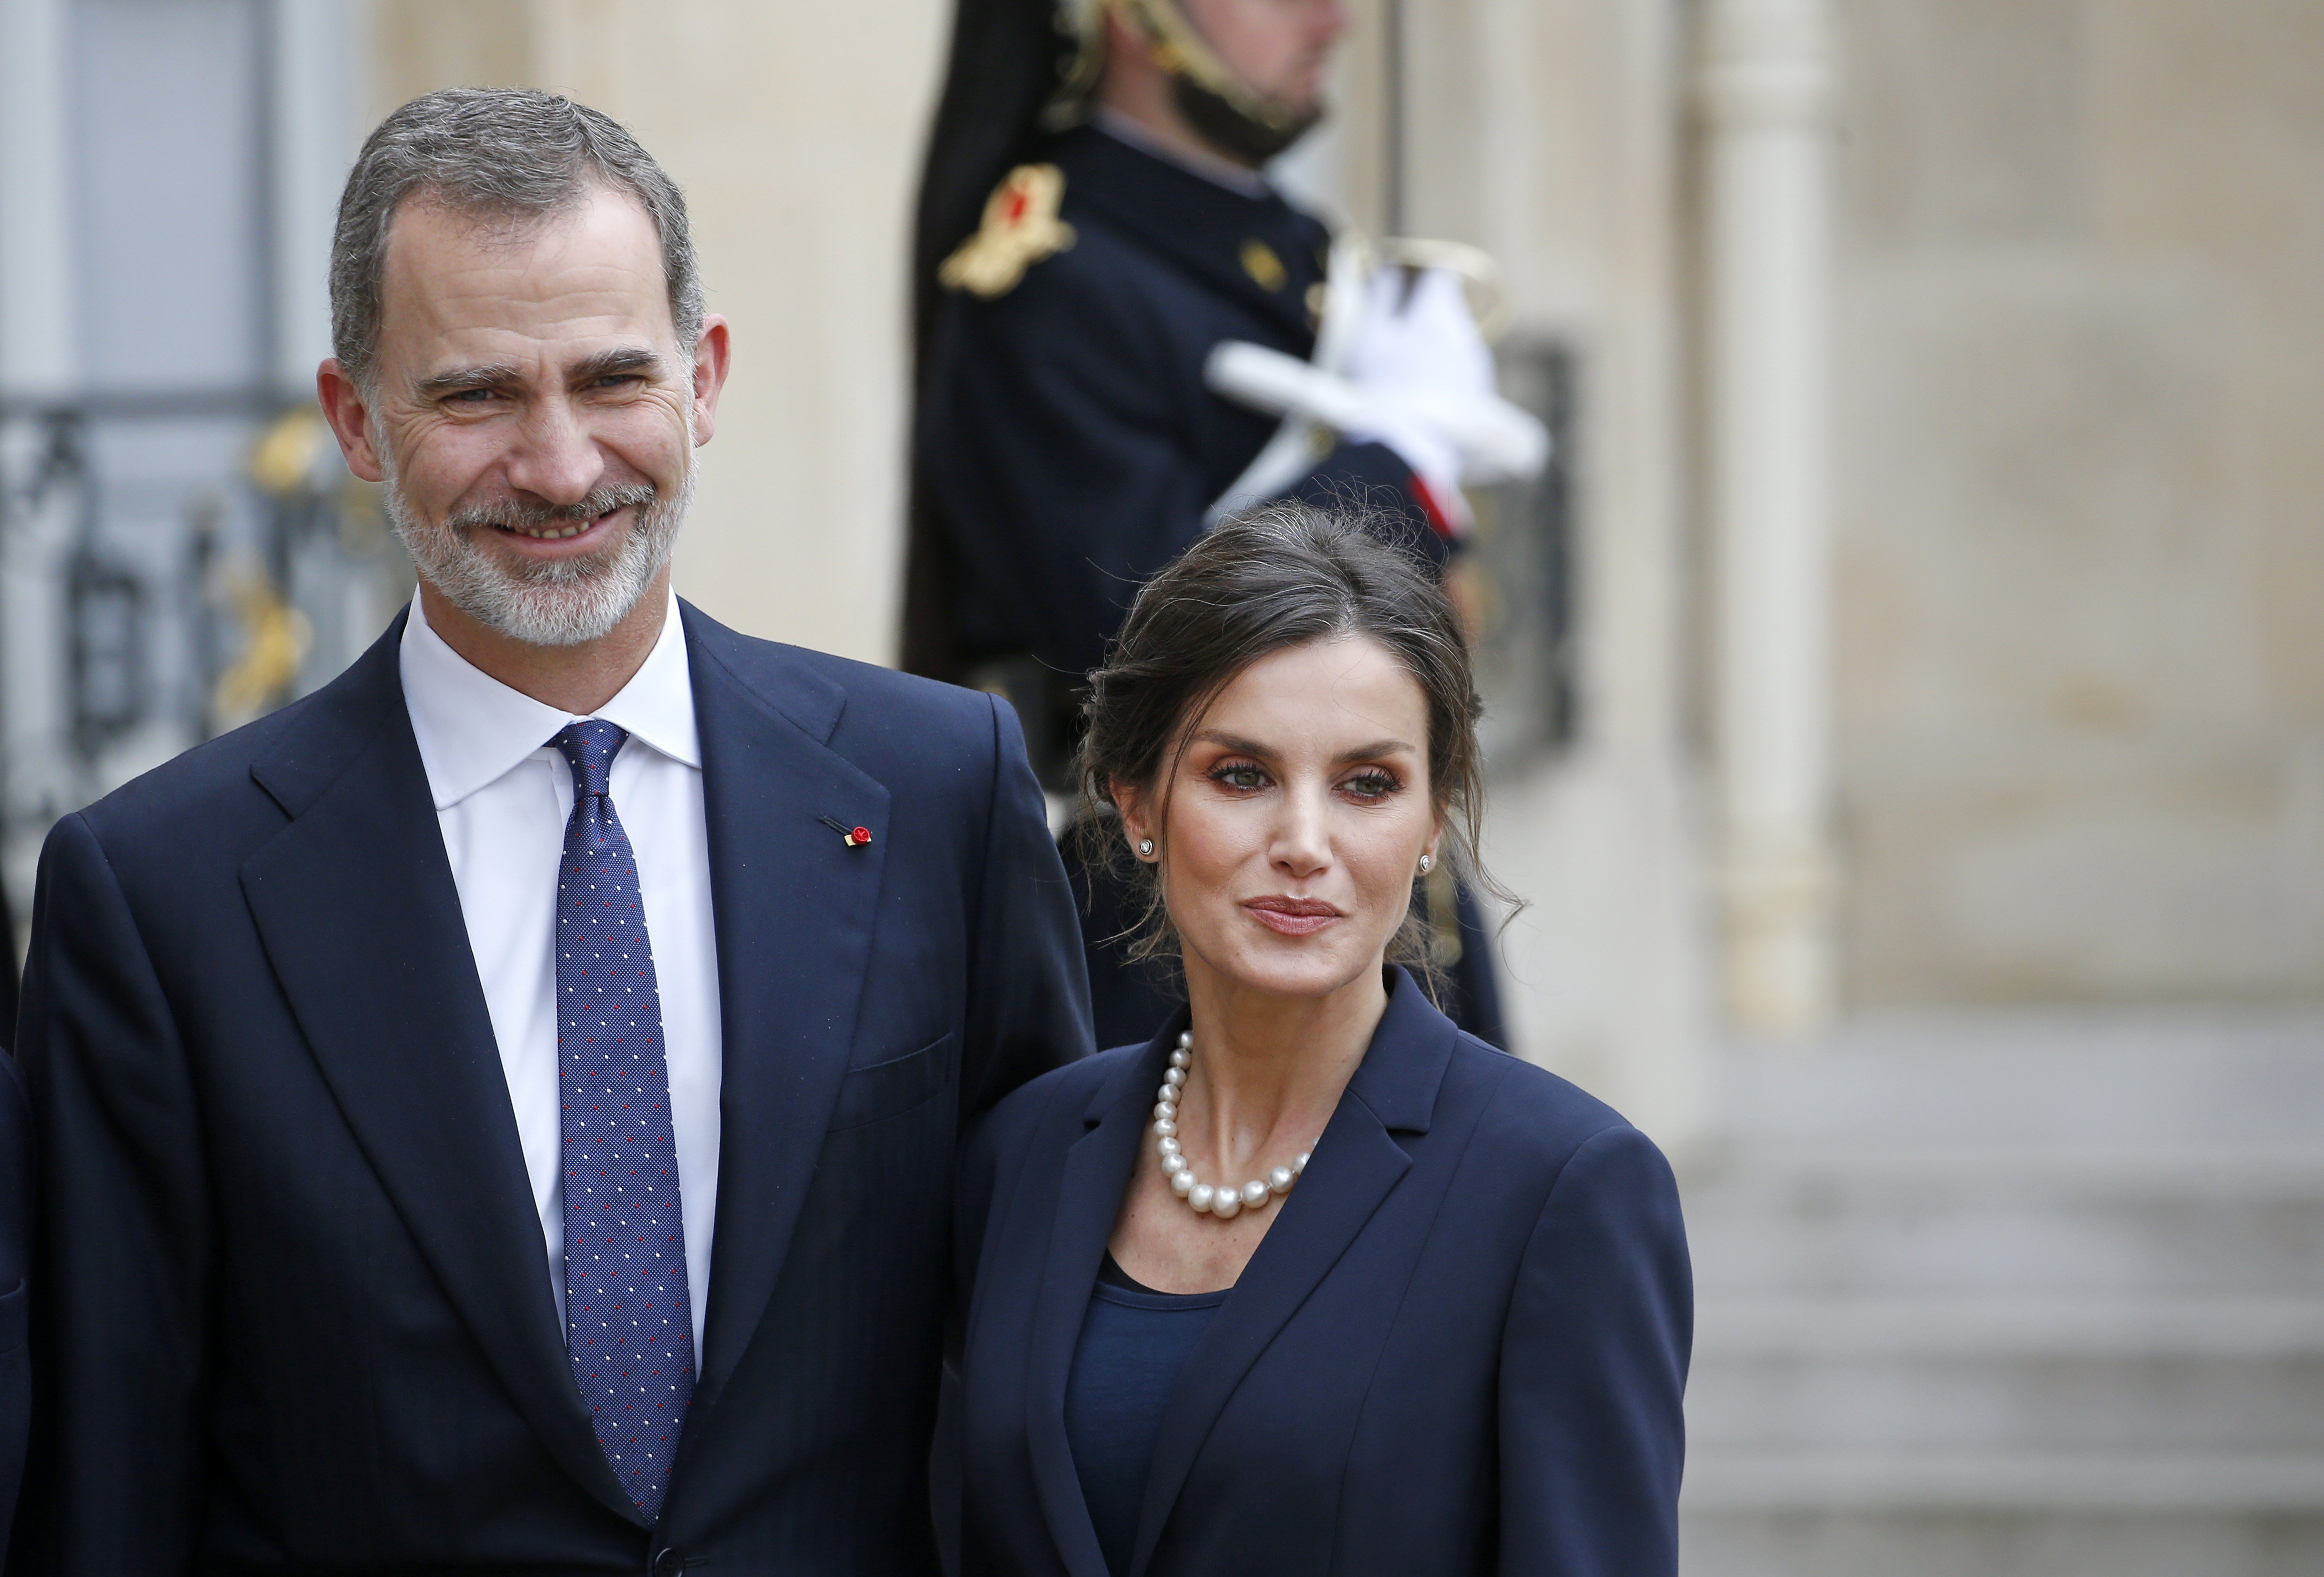 King Felipe of Spain and Queen Letizia of Spain pose after their lunch at the Elysee Presidential Palace on March 11, 2020. | Source: Getty Images